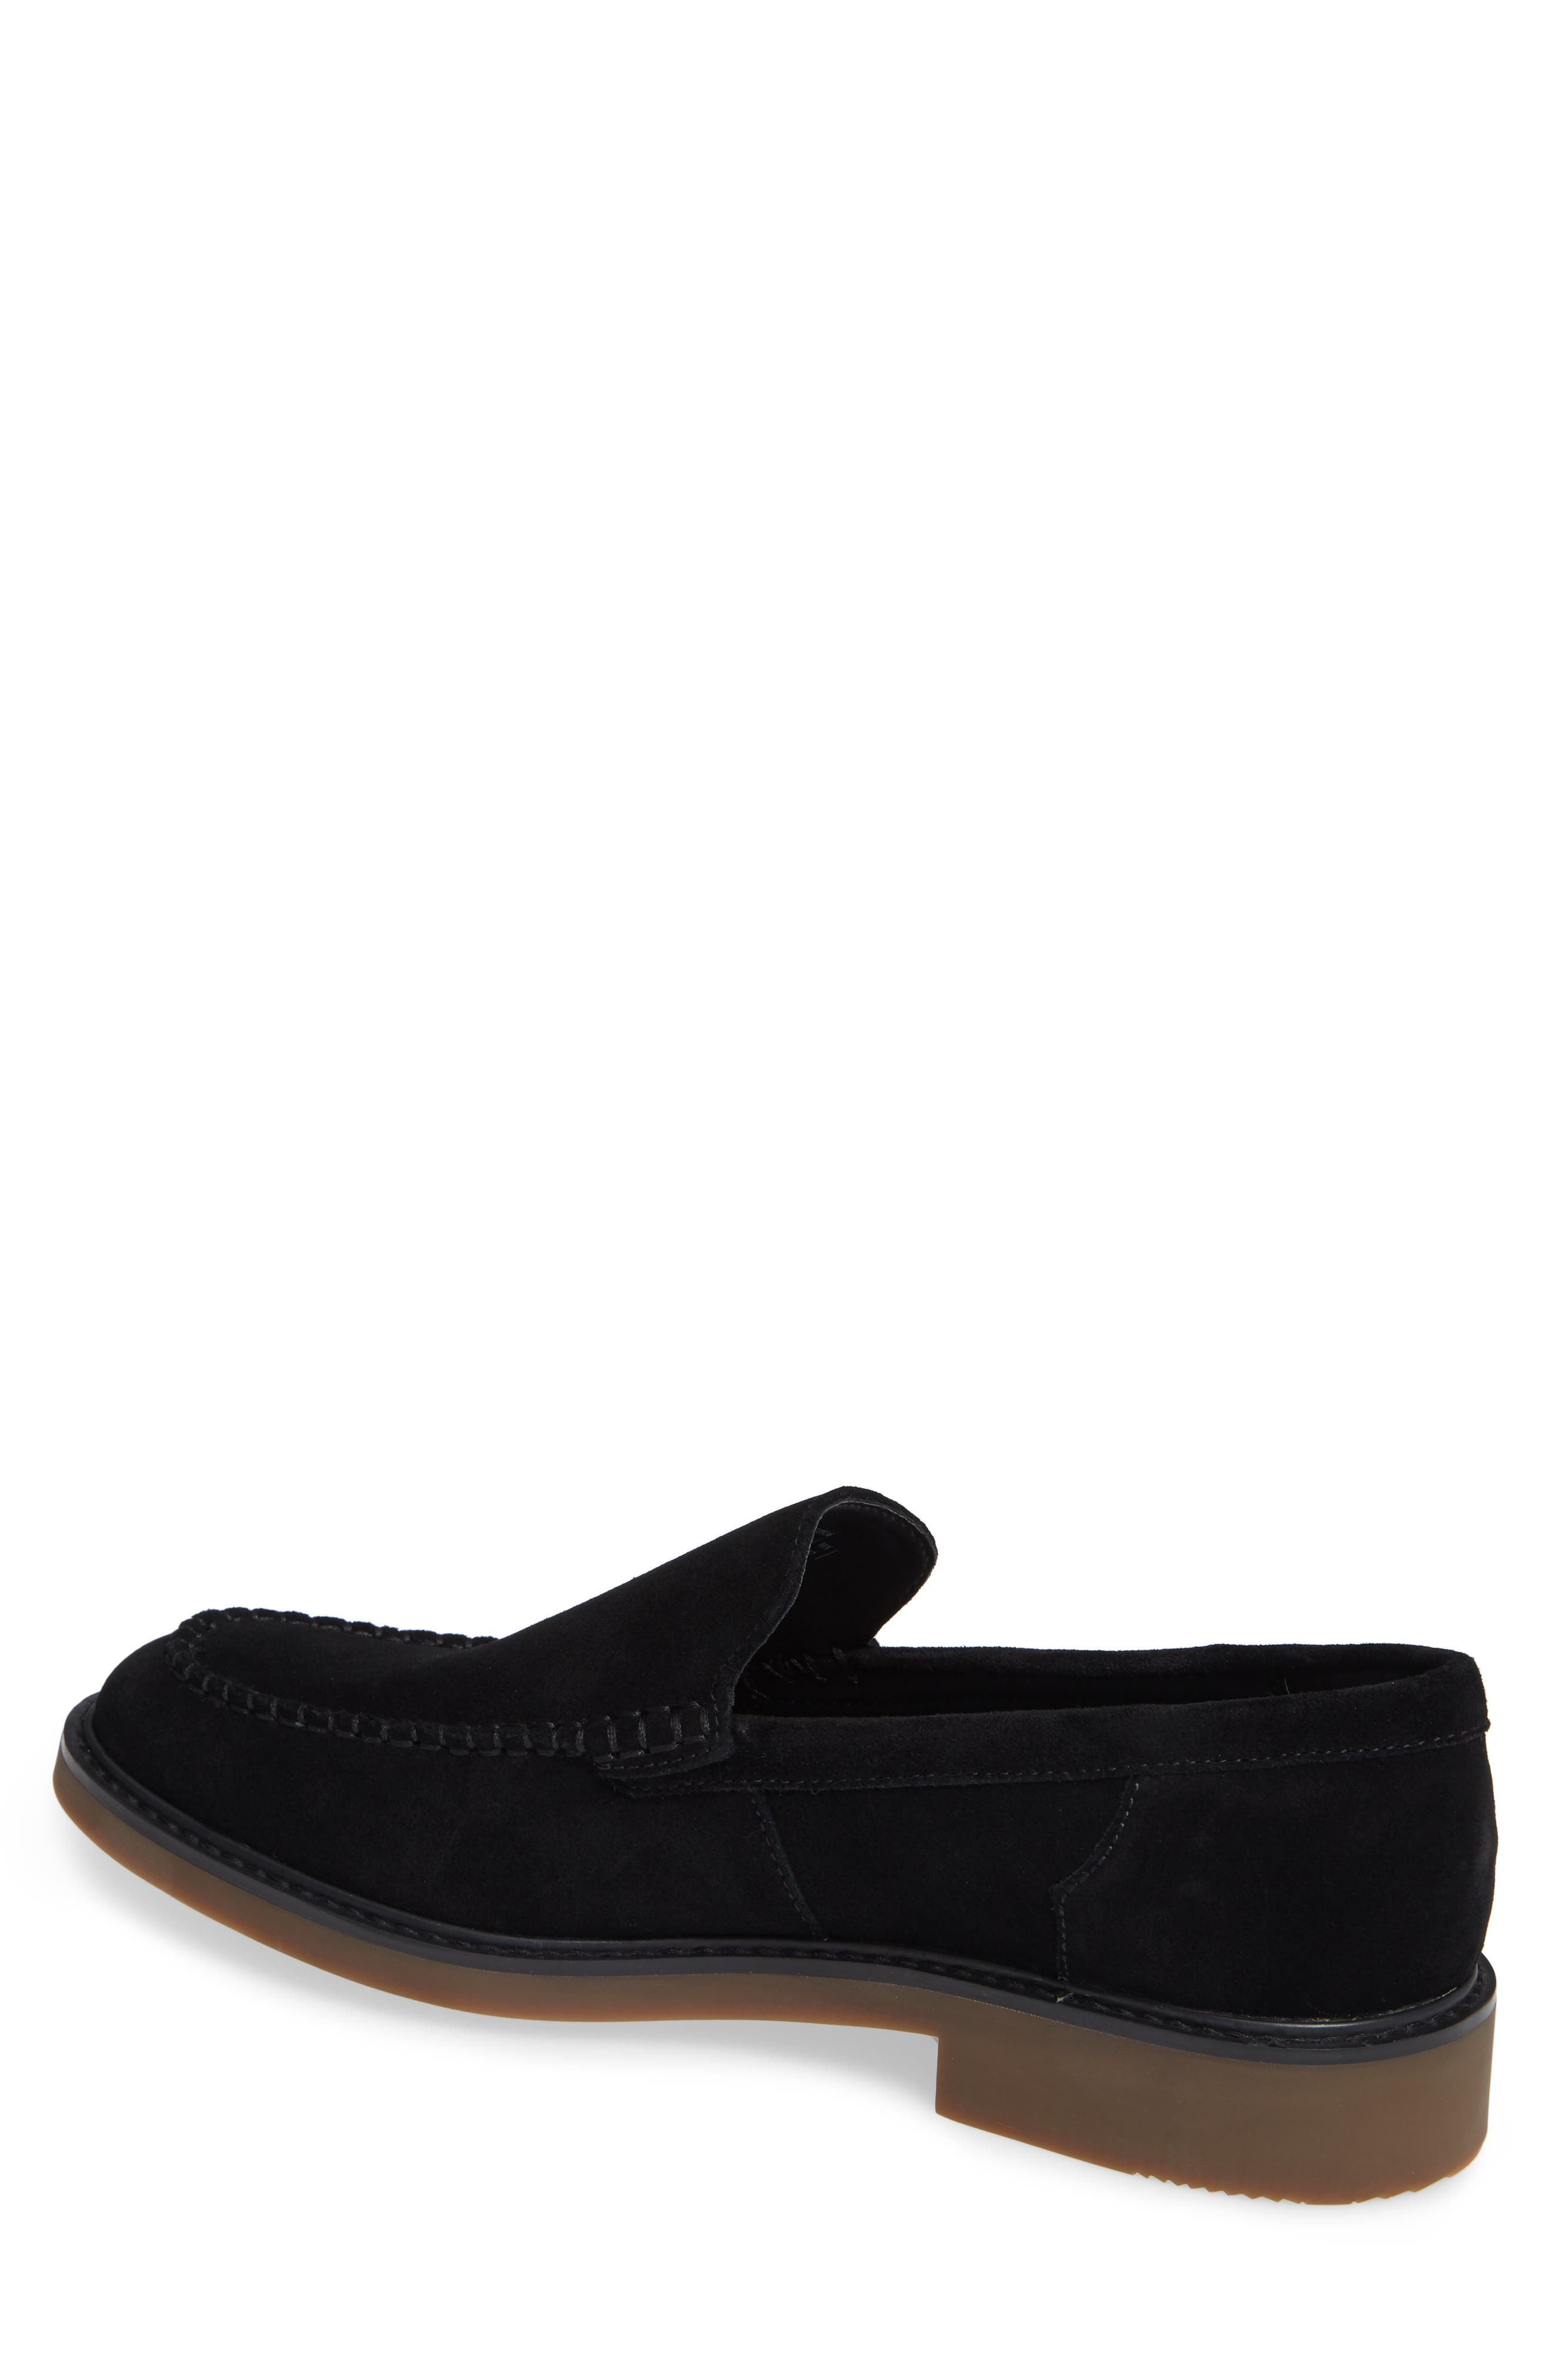 Vance Apron Toe Loafer,                             Alternate thumbnail 2, color,                             BLACK CALF SUEDE